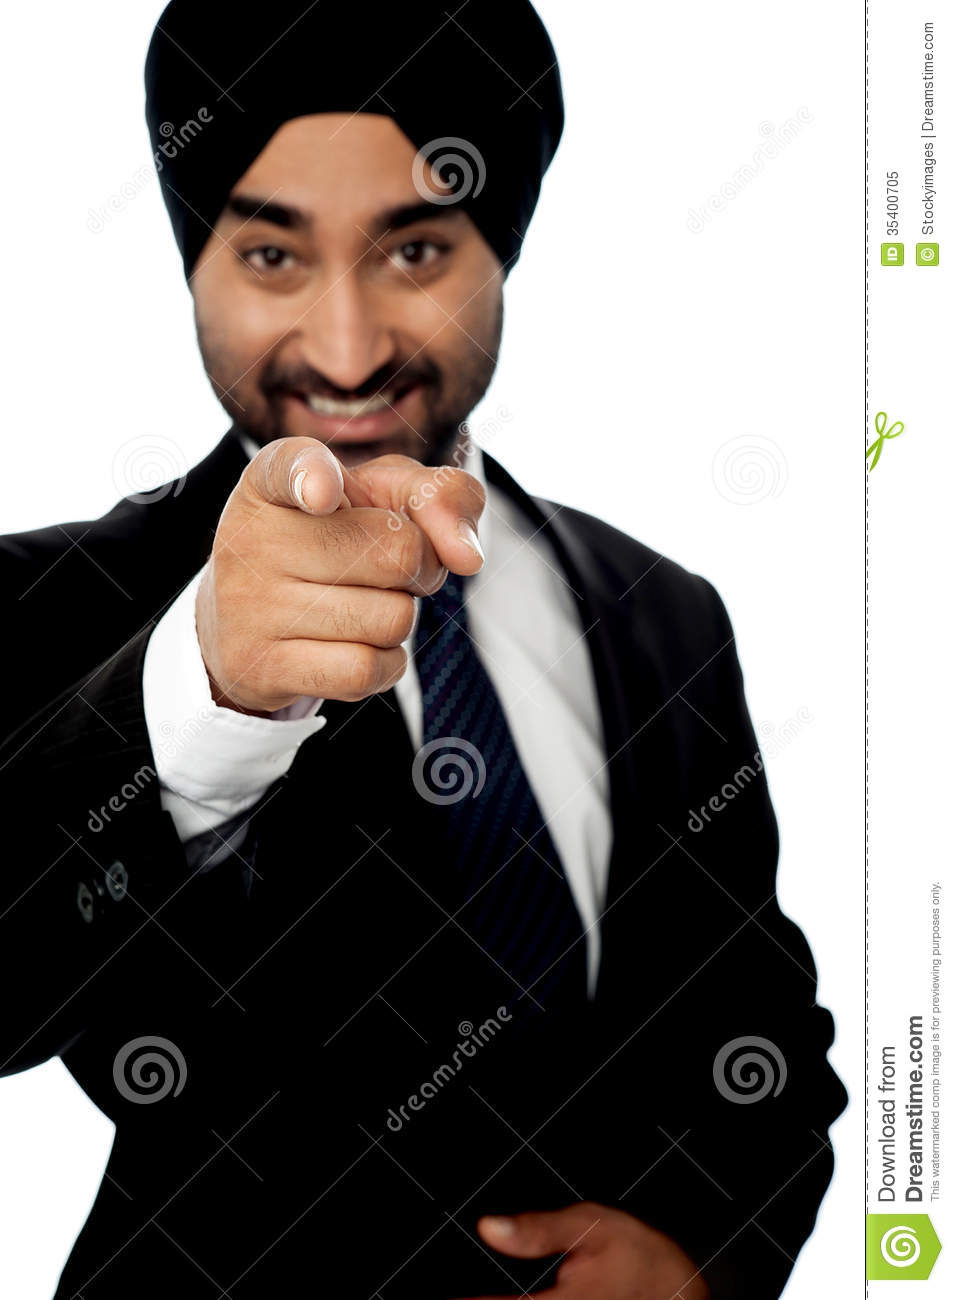 Corporate Man Pointing Towards You Royalty Free Stock